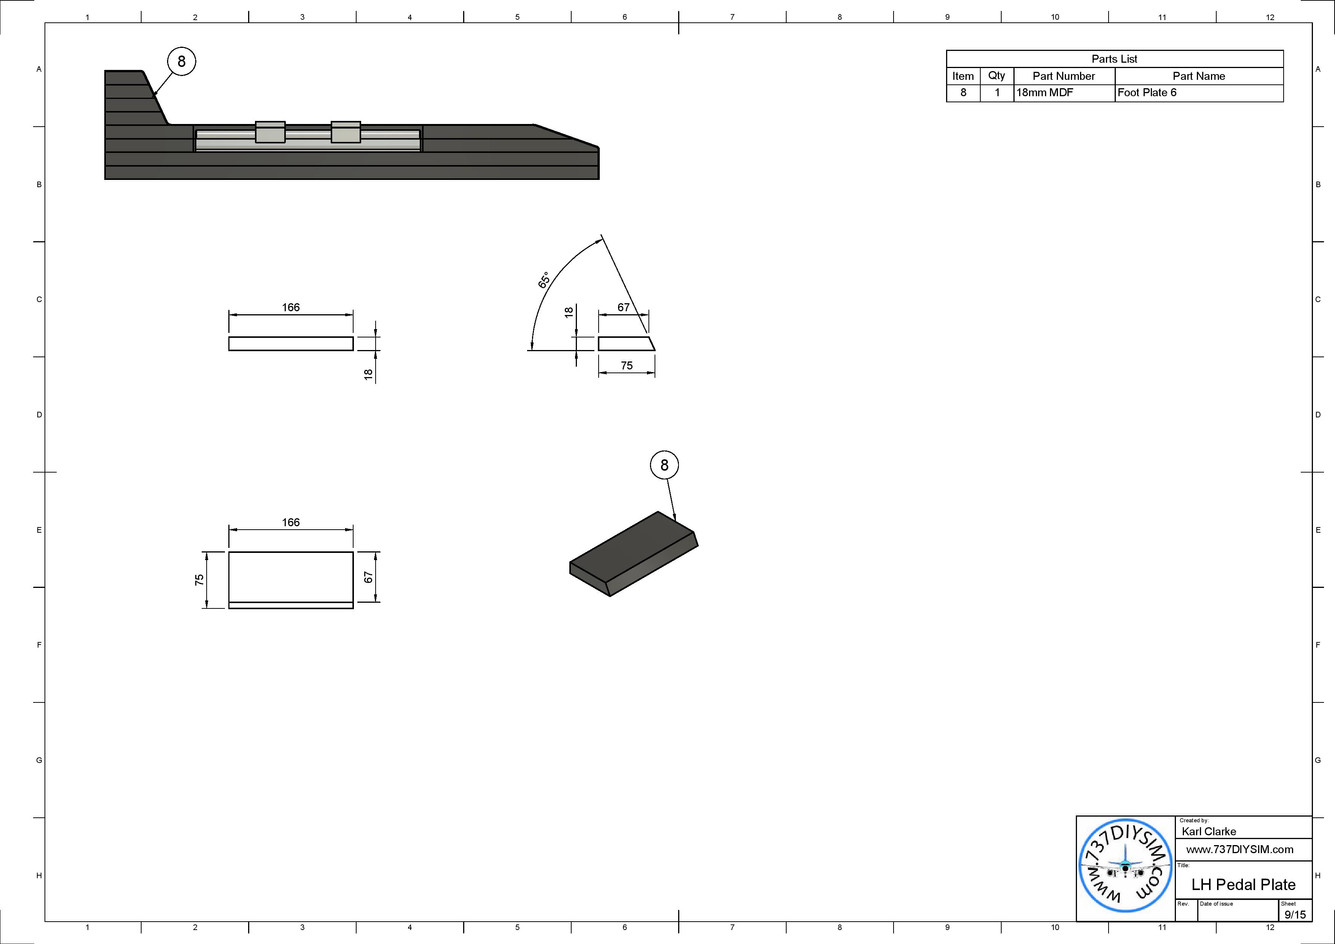 LH Pedal Plate Drawing v1-page-009.jpg